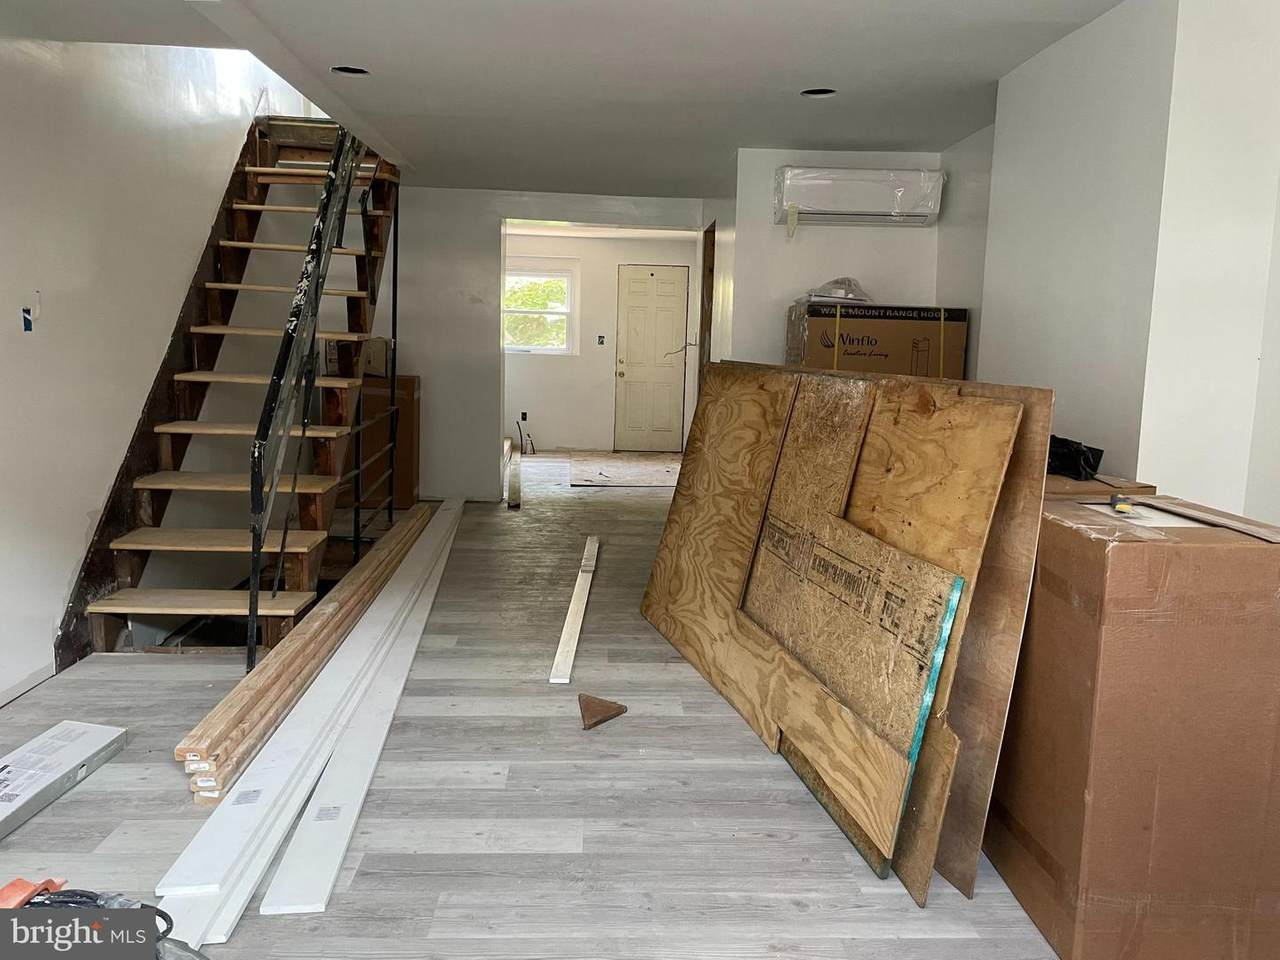 937 Cantrell Street - Photo 1